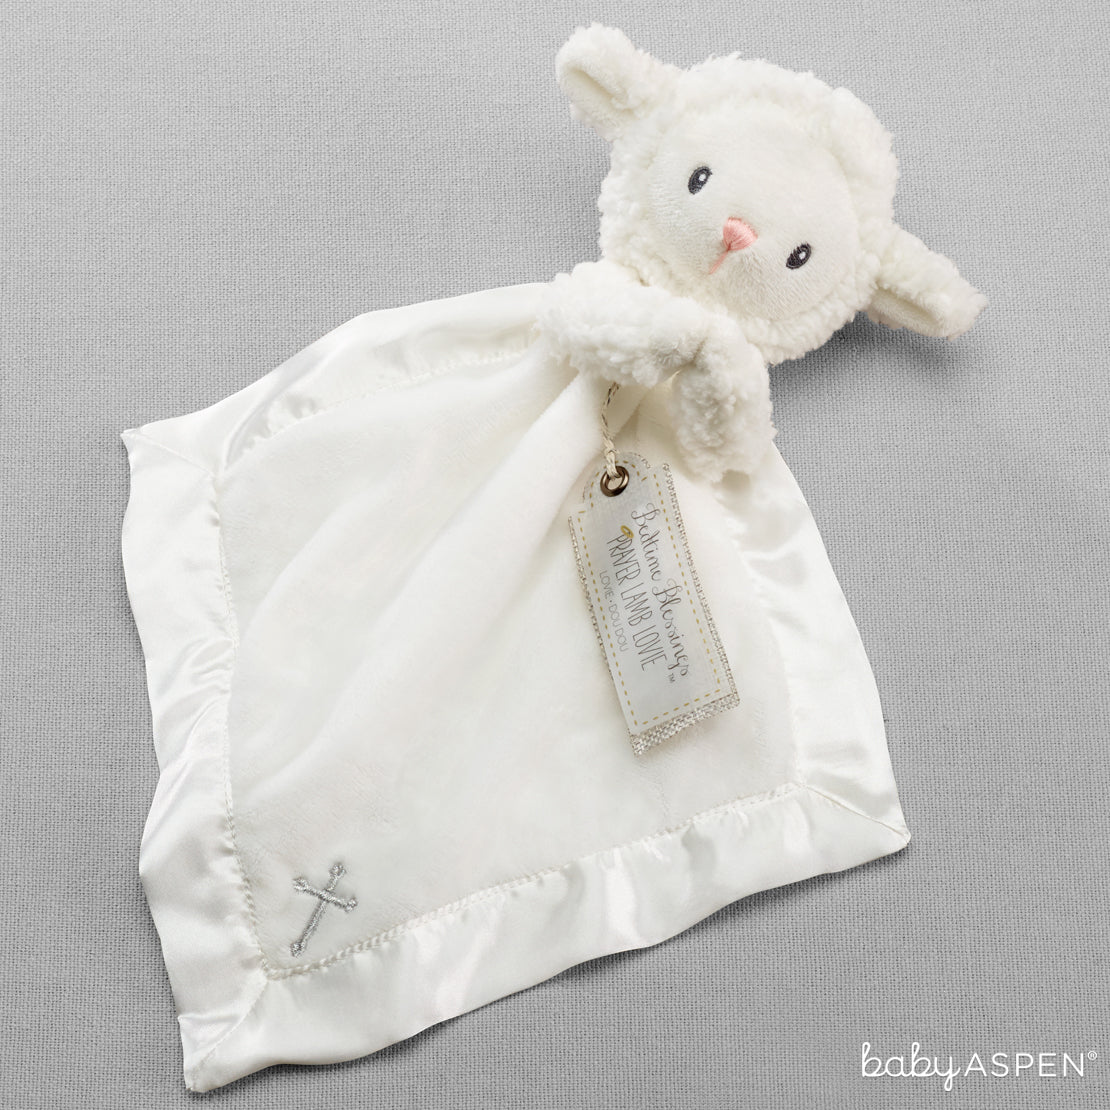 Bedtime Blessings Lamb Lovie | Cozy Blankets & Lovies to Warm Baby this Winter | Baby Aspen